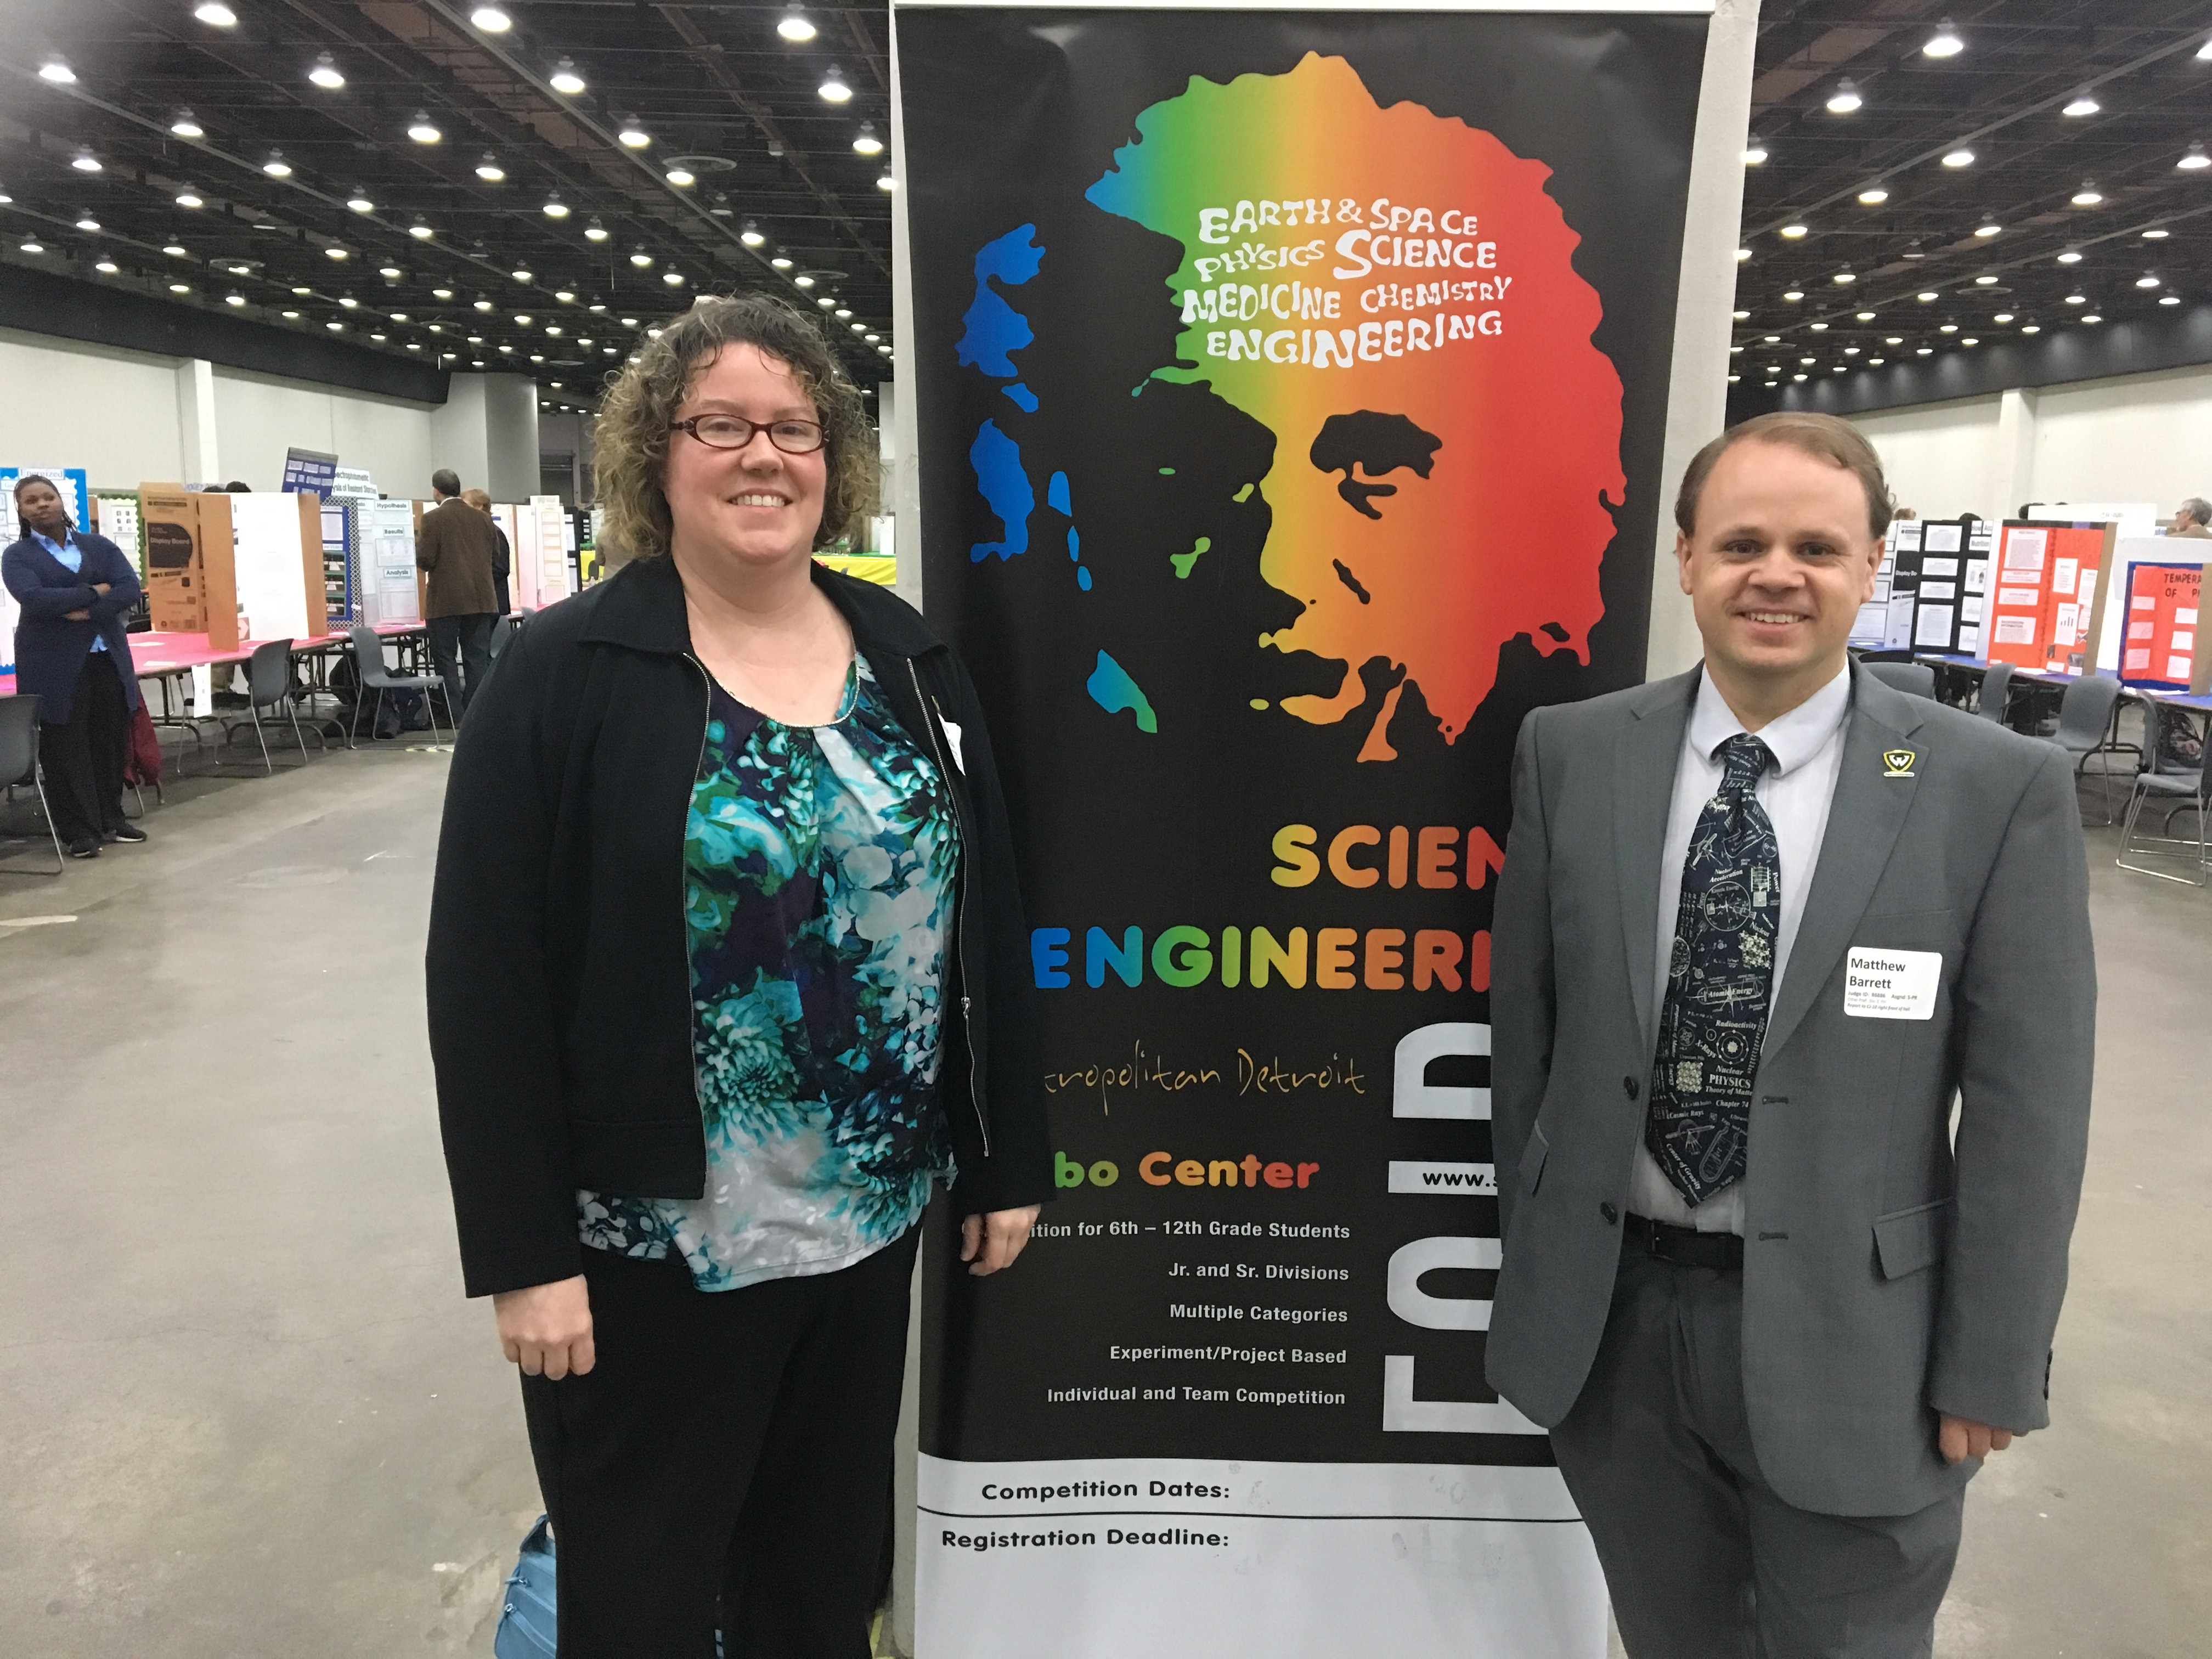 Megan McCullen and Matthew Barrett stand with the banner for the Science Fair, a rainbow colored image of Albert Einstein